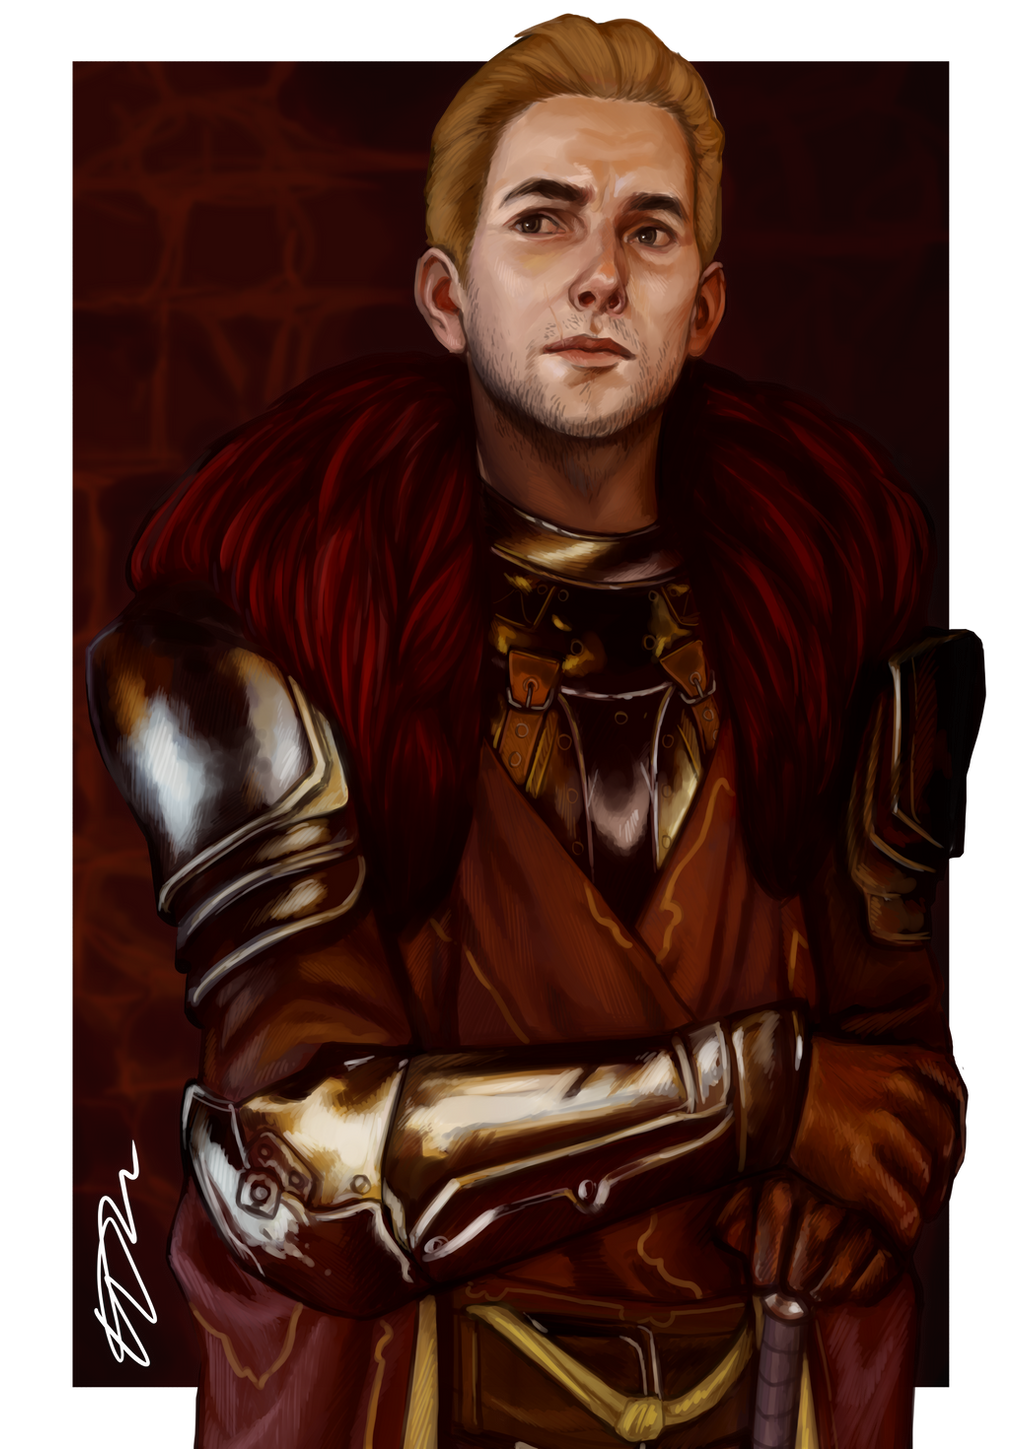 Dragon Age Inquisition Cullen Rutherford By Drenerd On Deviantart